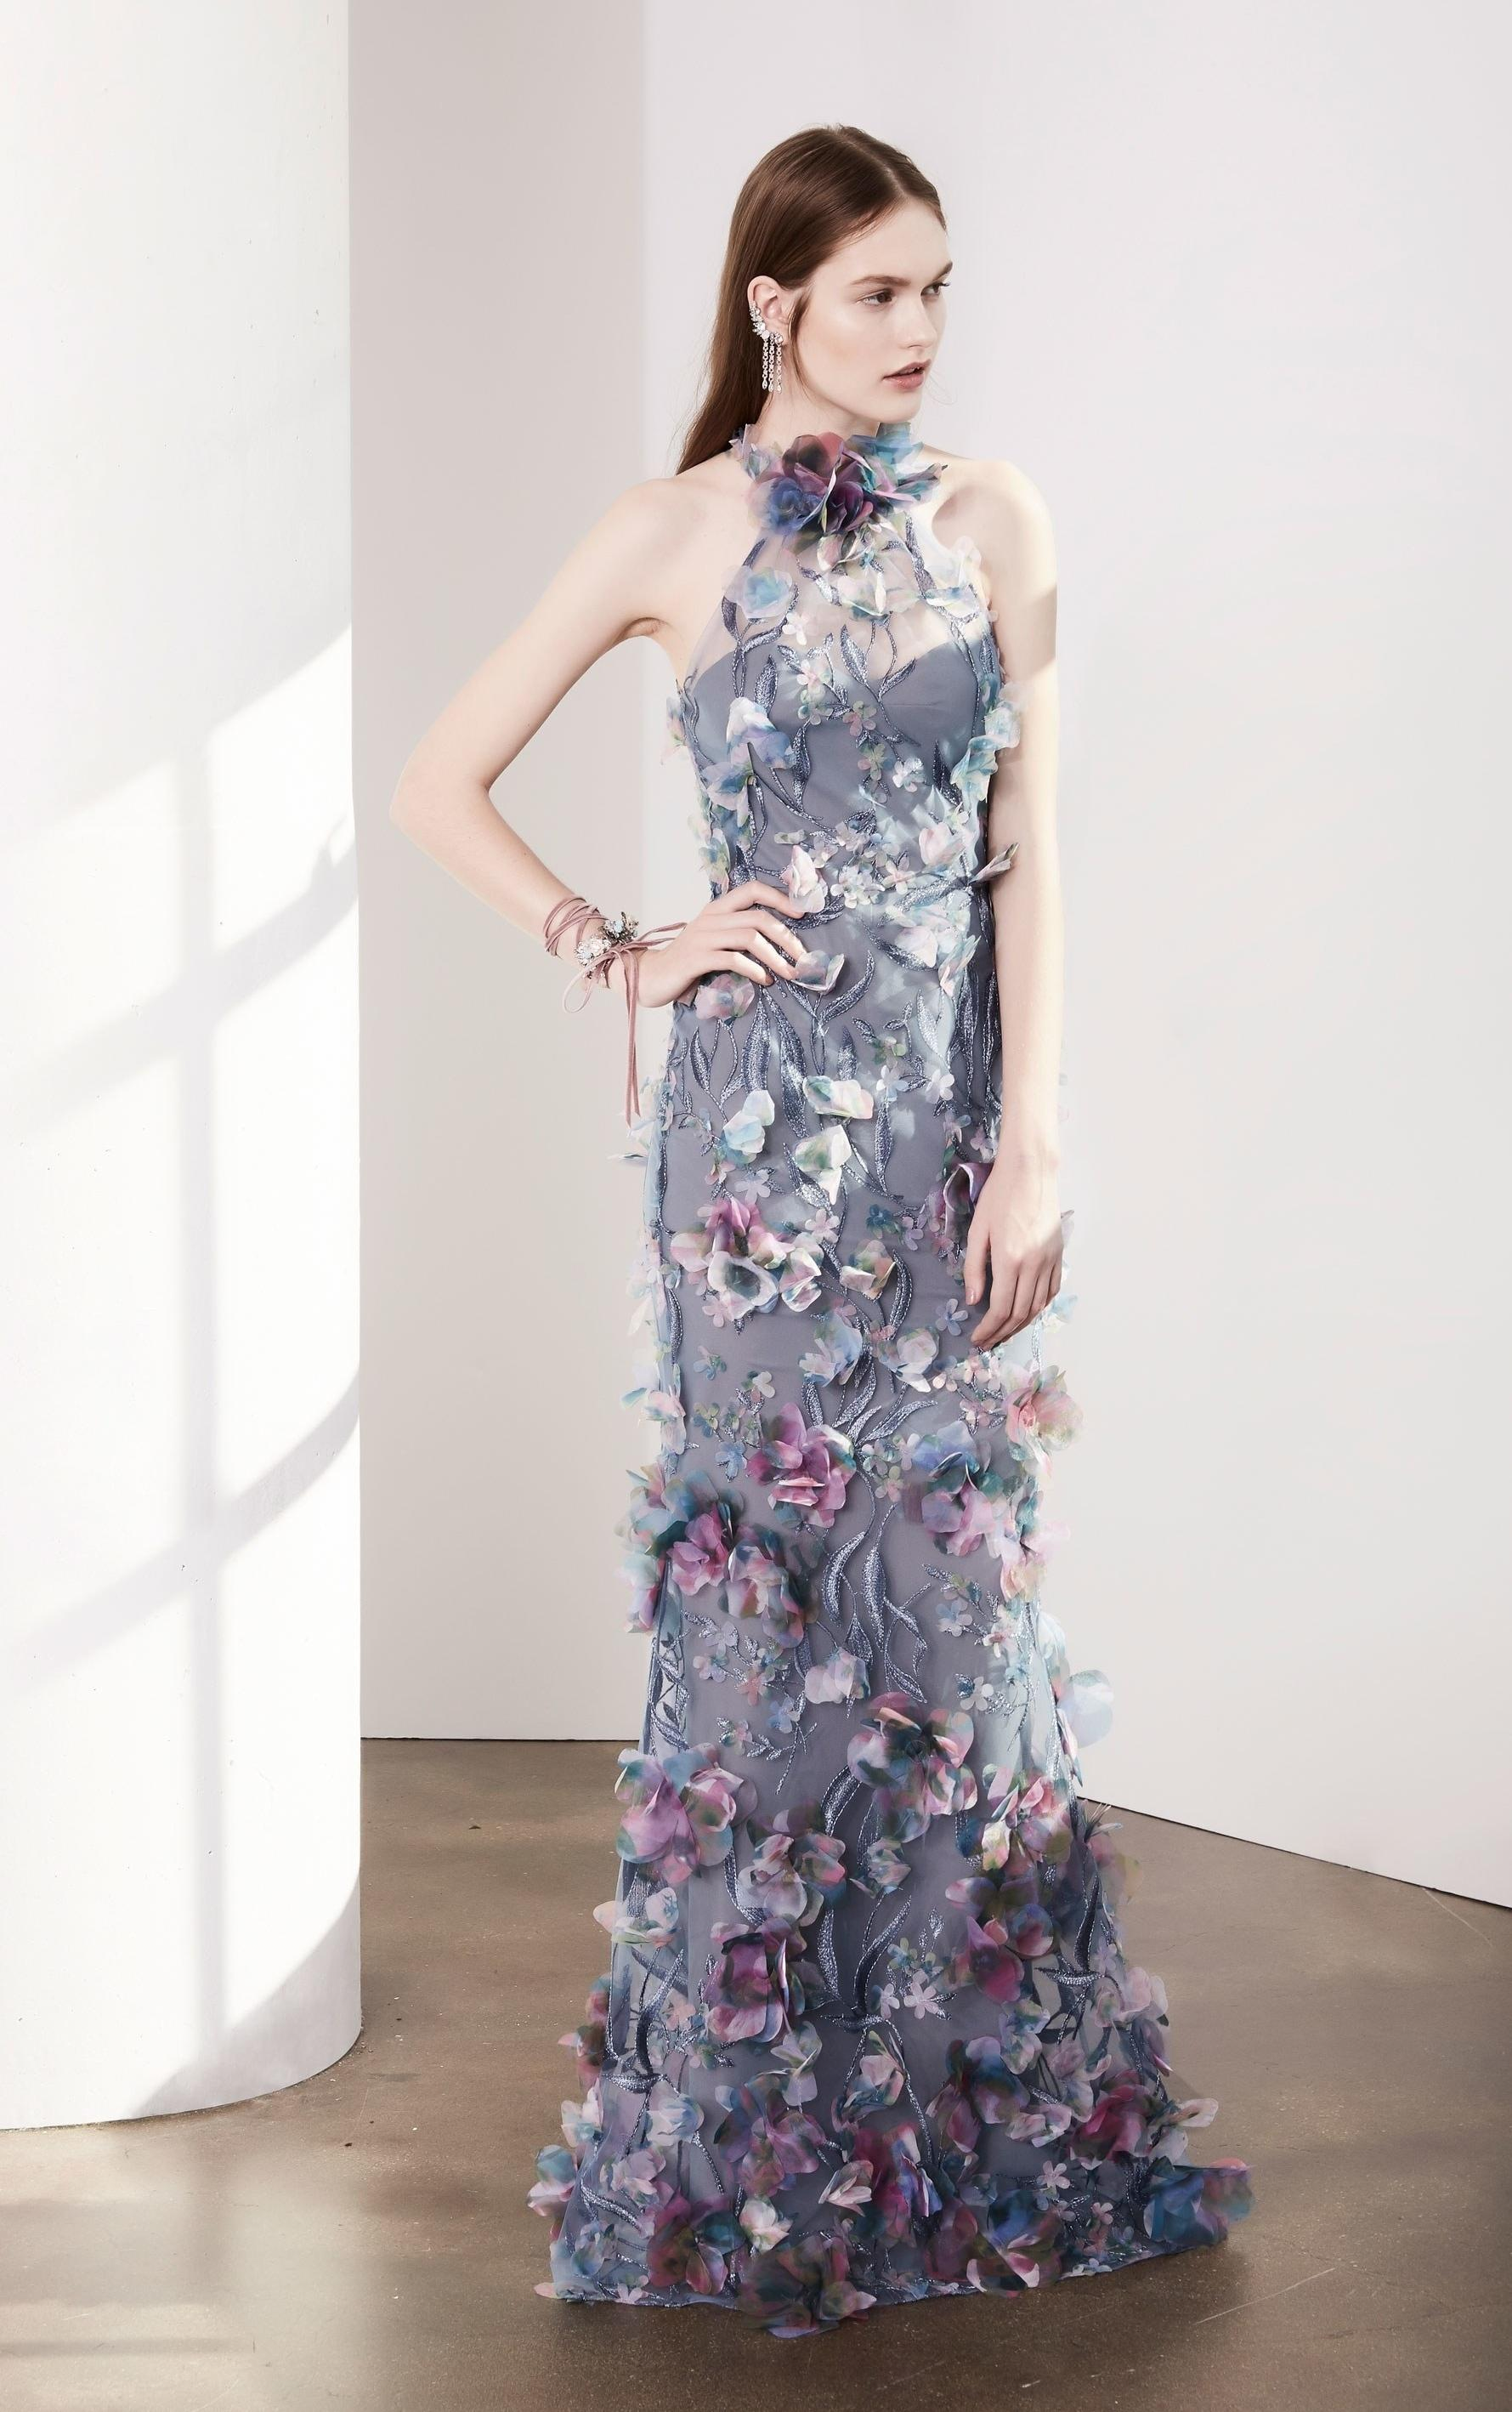 Lyst - Marchesa Notte Sleeveless 3d Floral Halter Evening Gown in Purple